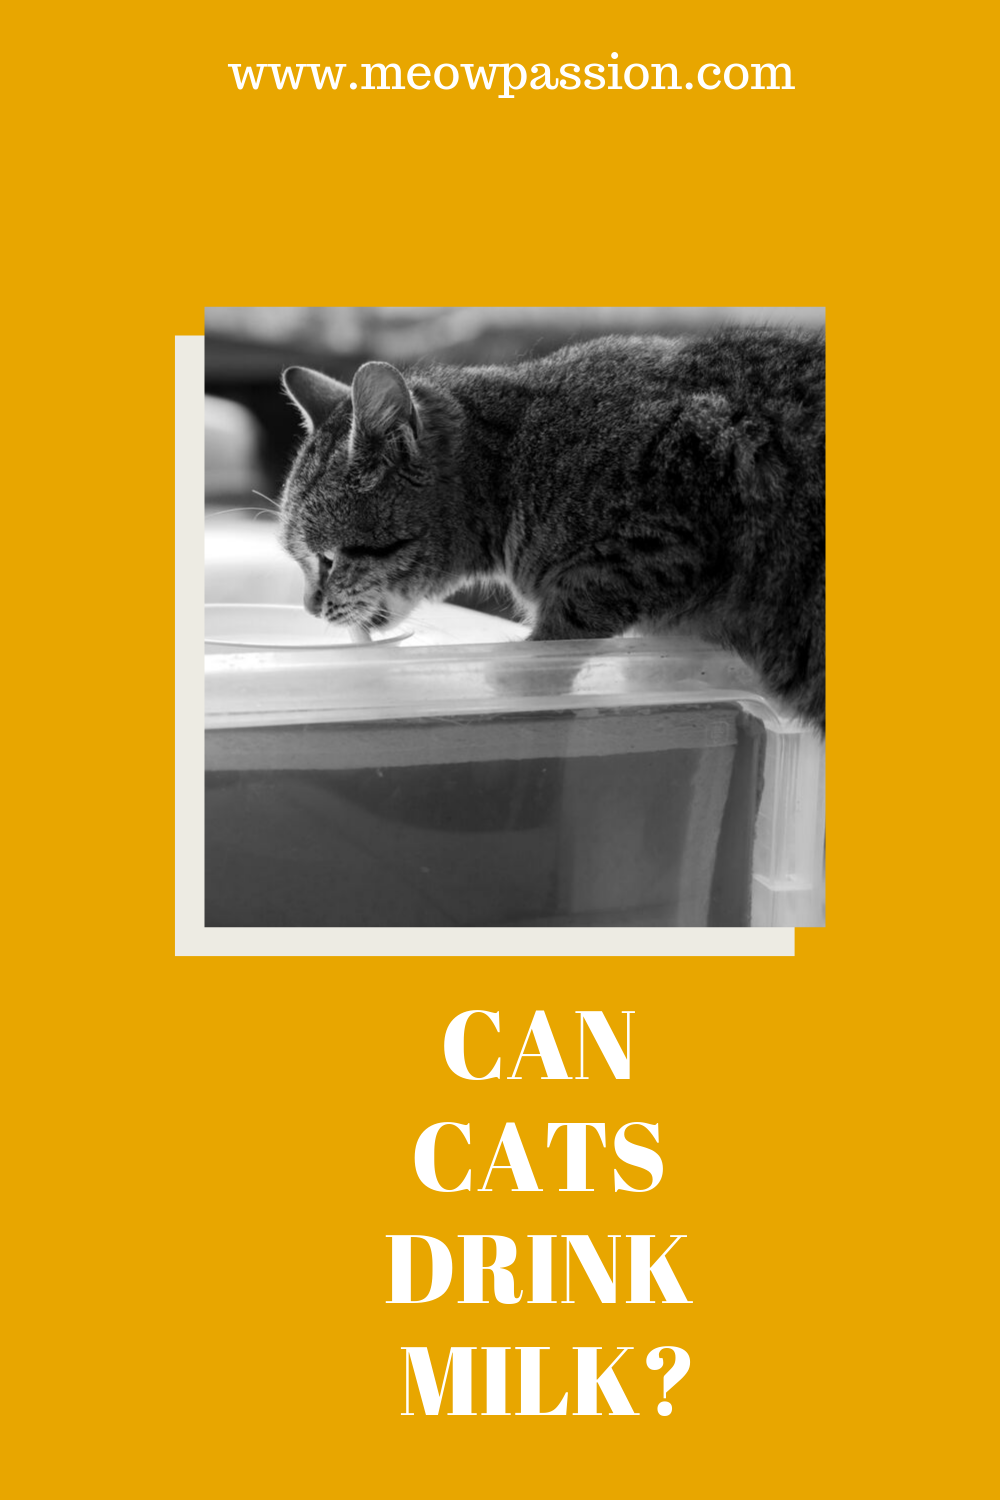 Human Foods That Are Toxic For Cats Meowpassion Cat Drinking Cats Drink Milk